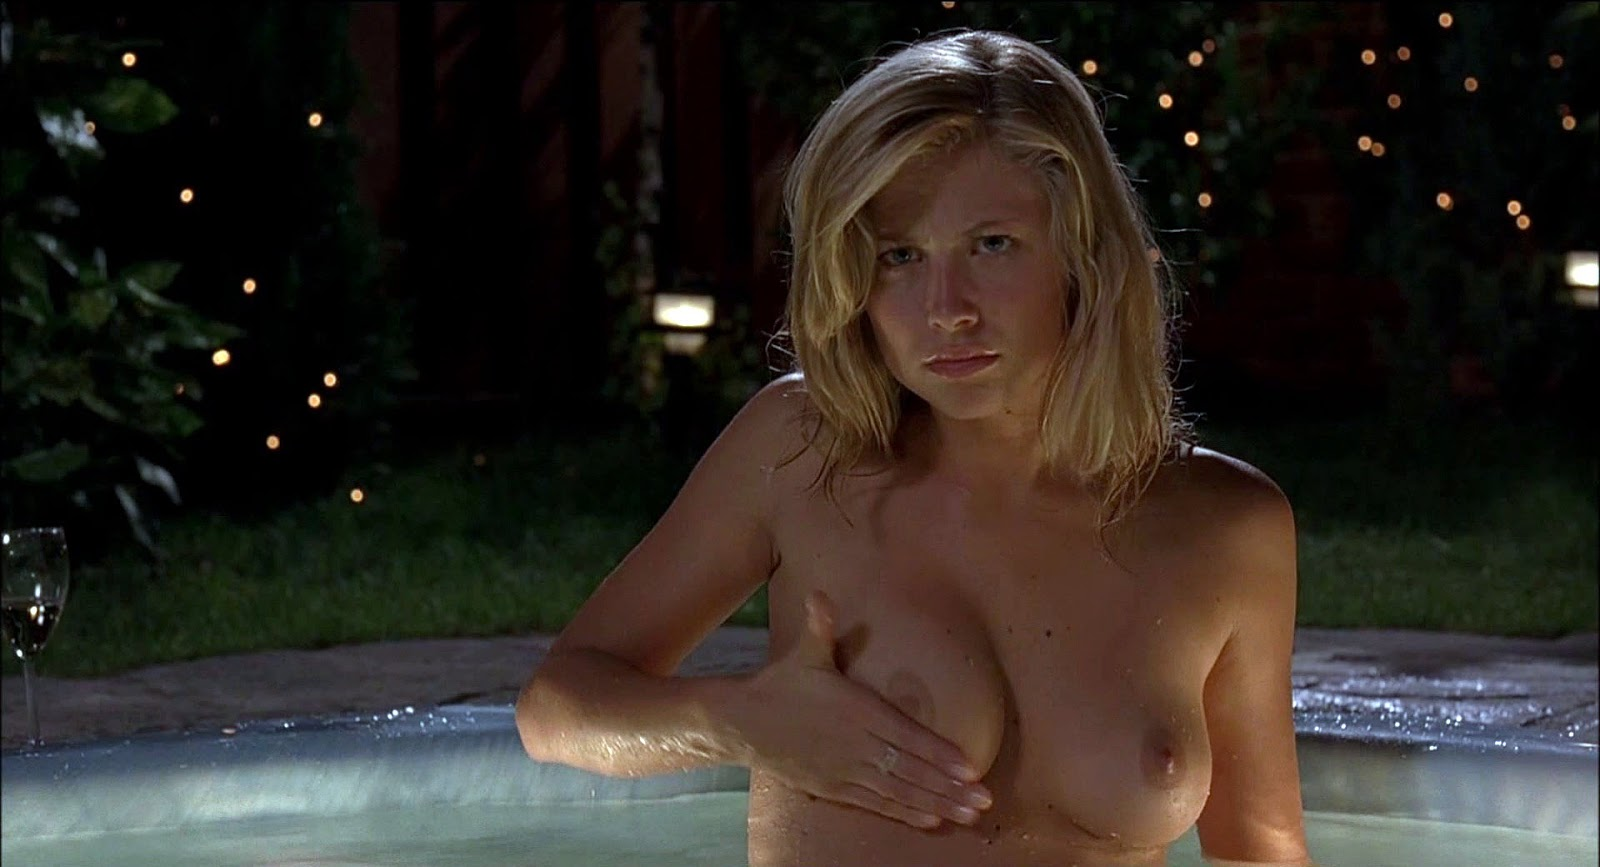 Molly Schade And Lucy Lawless Hot Scenes From Euro Trip